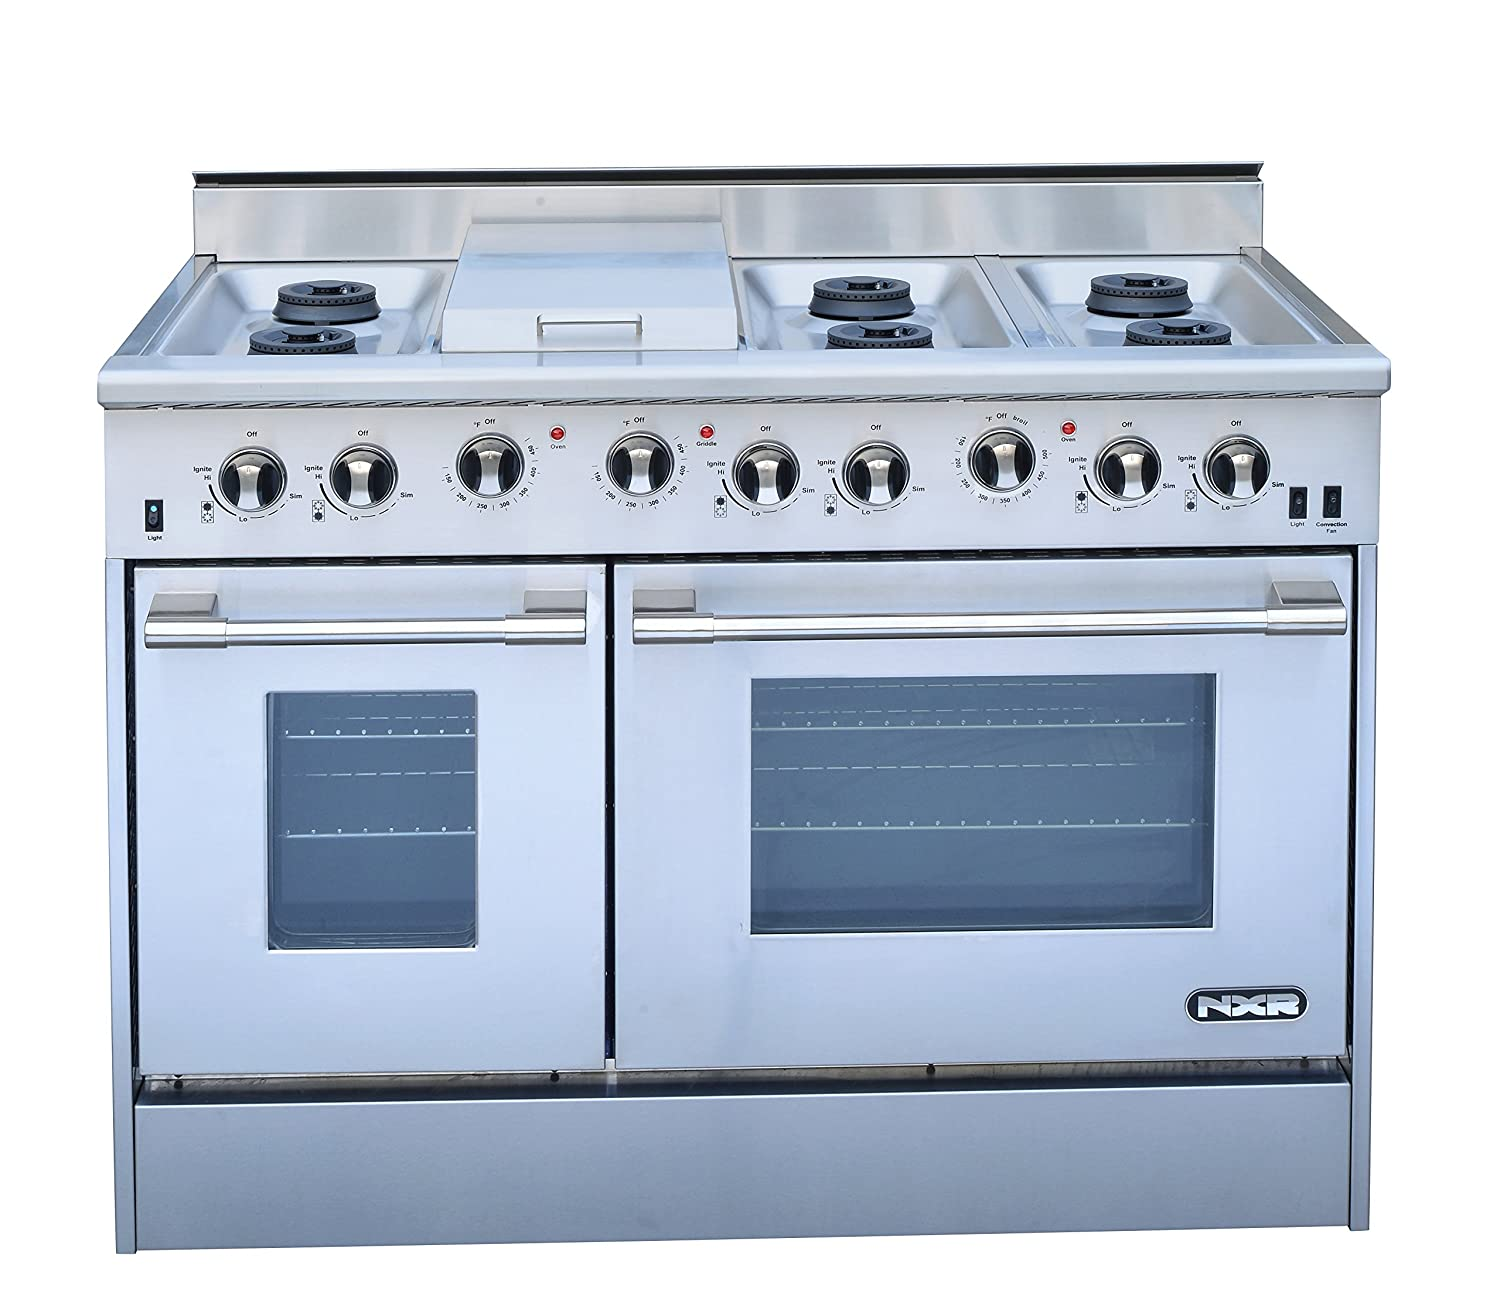 Amazon.com: NXR DRGB4801 Professional Style Gas Range, 48 ...